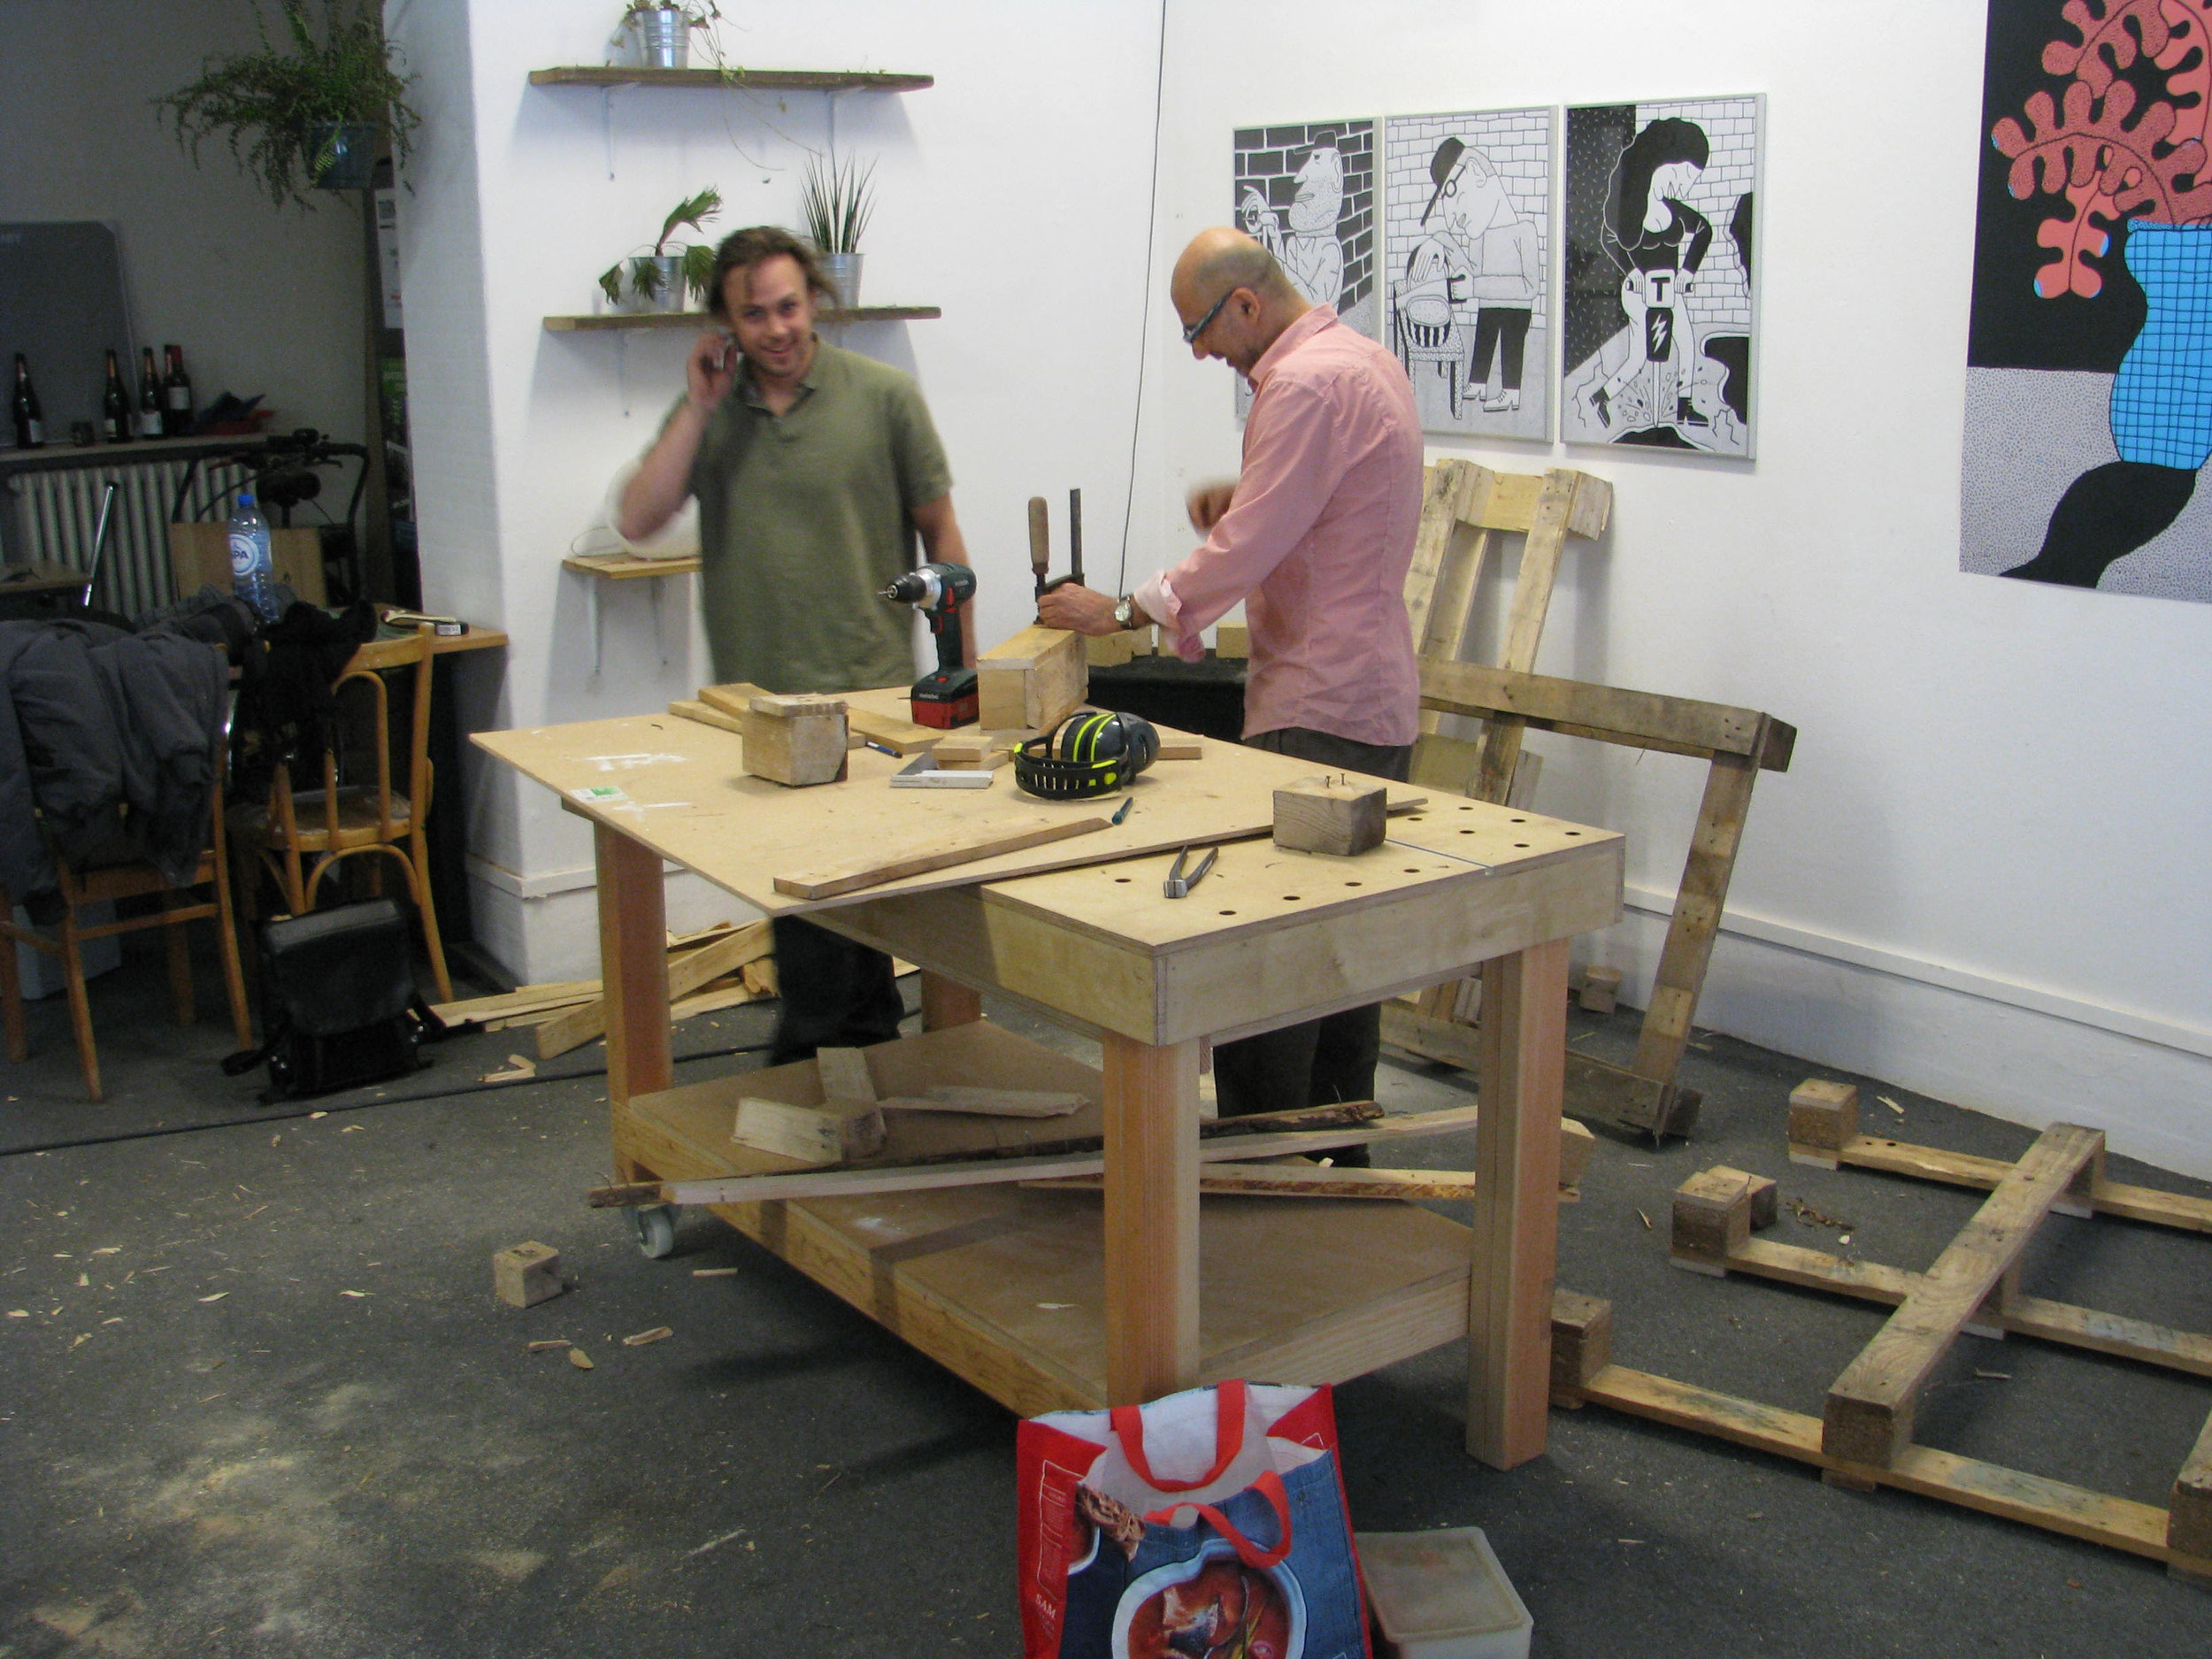 Our workshop during Bouture Fest in March. Big up to the volunteers for setting this up!